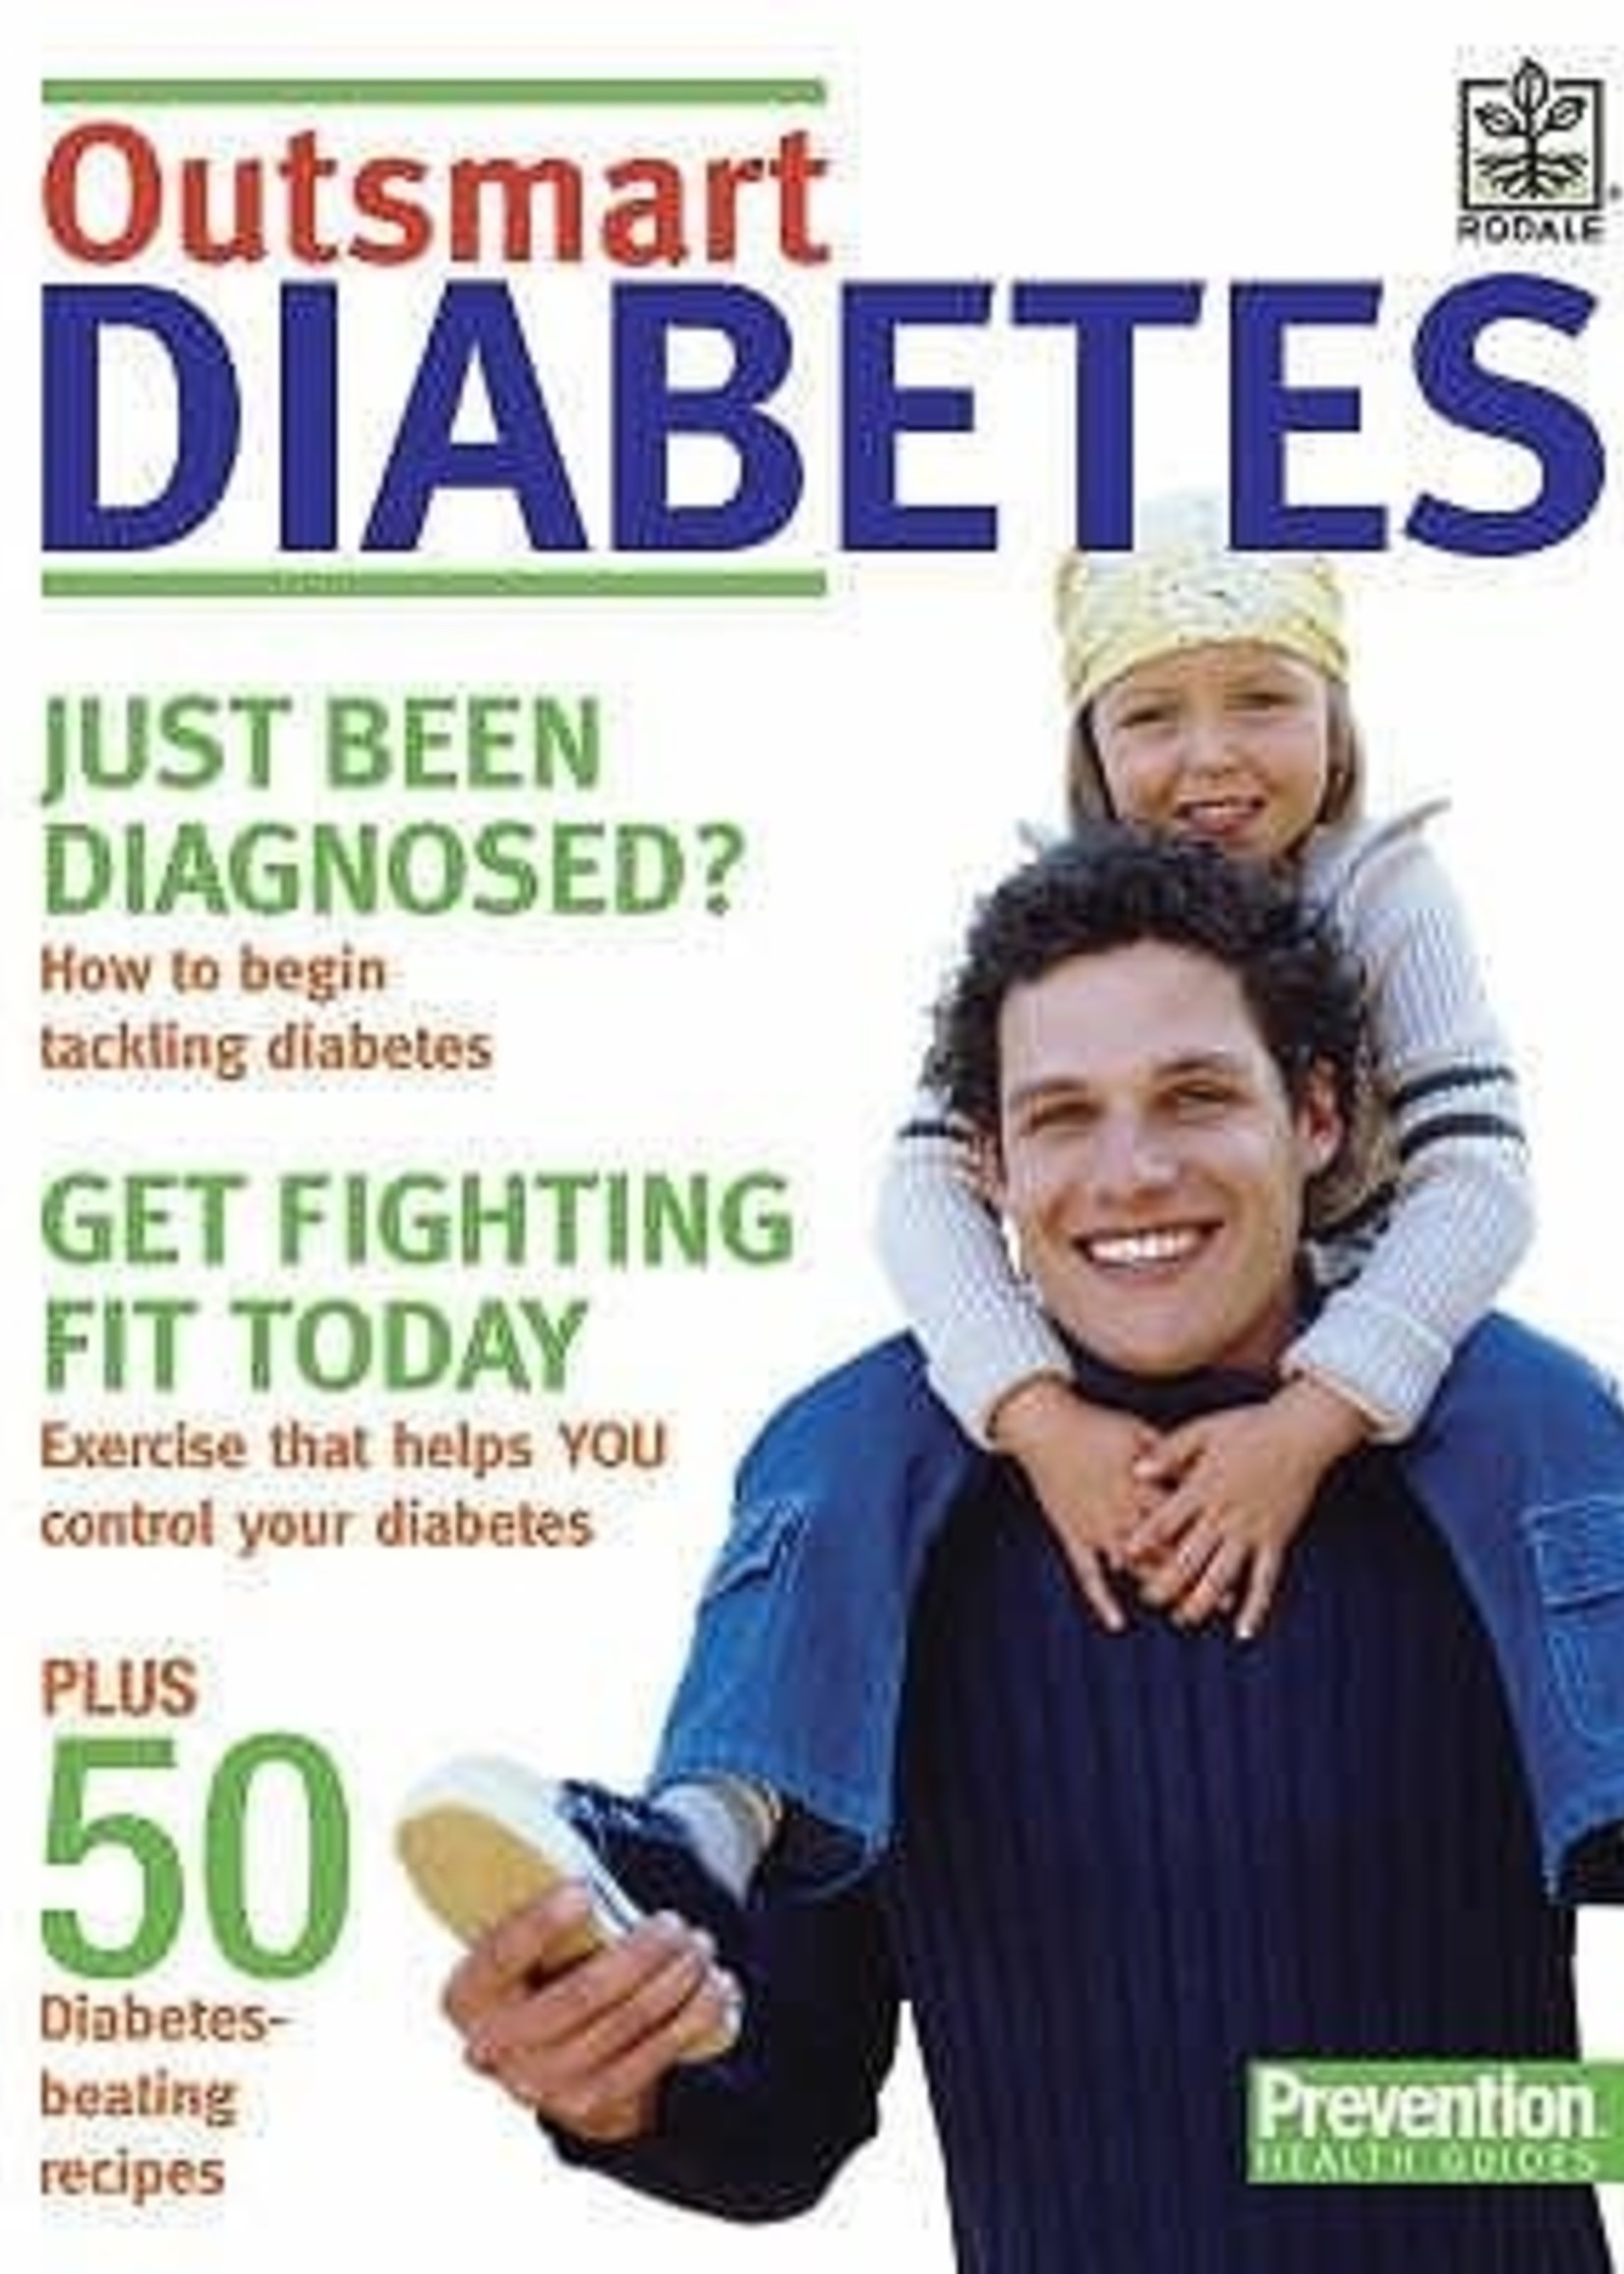 USED - Outsmart Diabetes by Dawn Bates